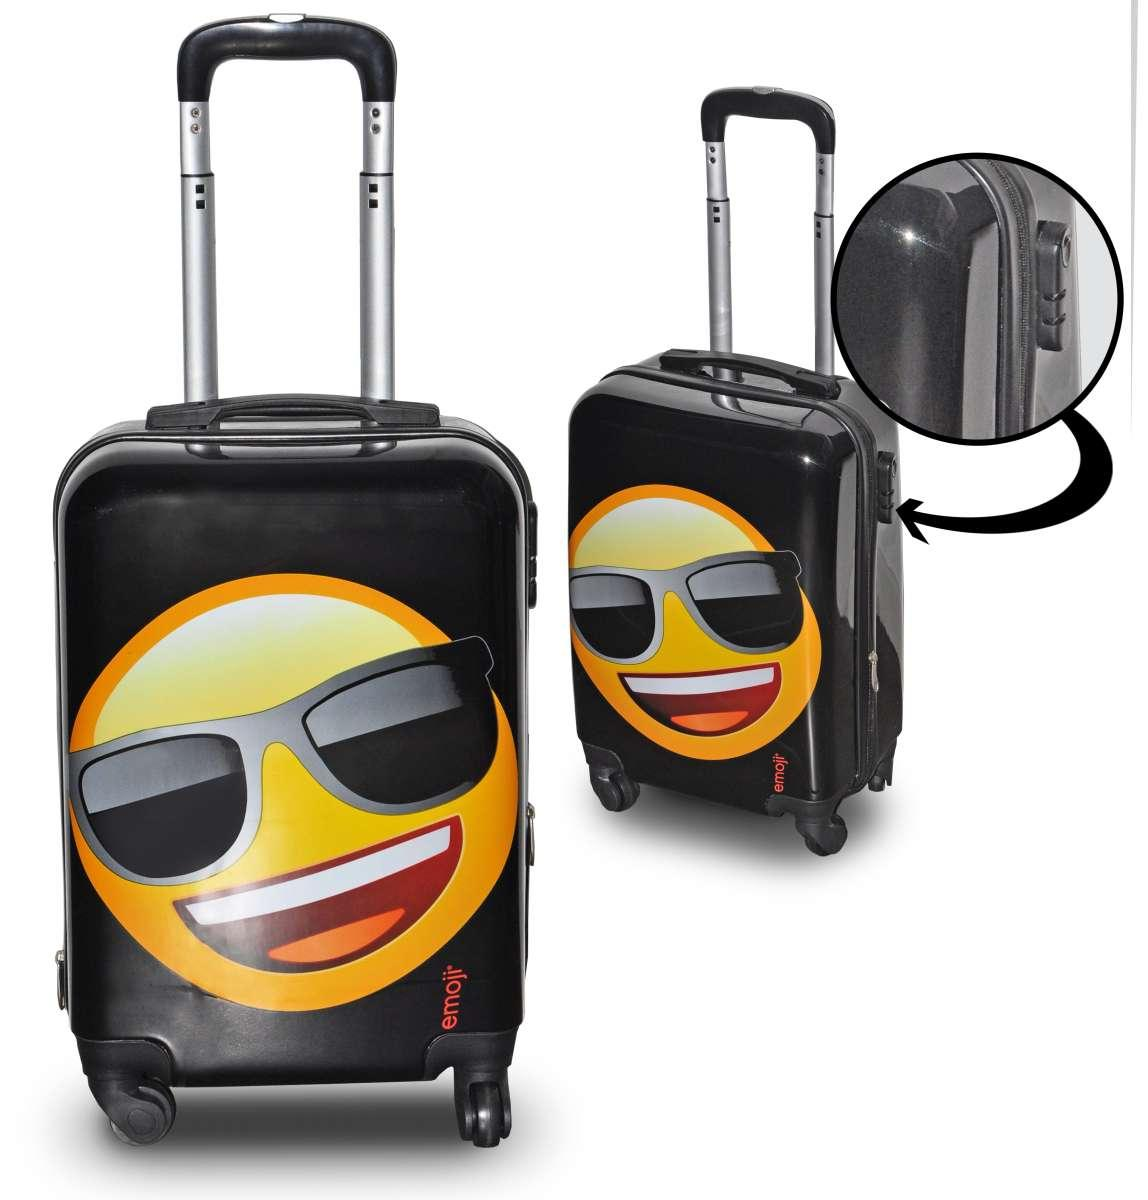 It's travel trolley grande emoji